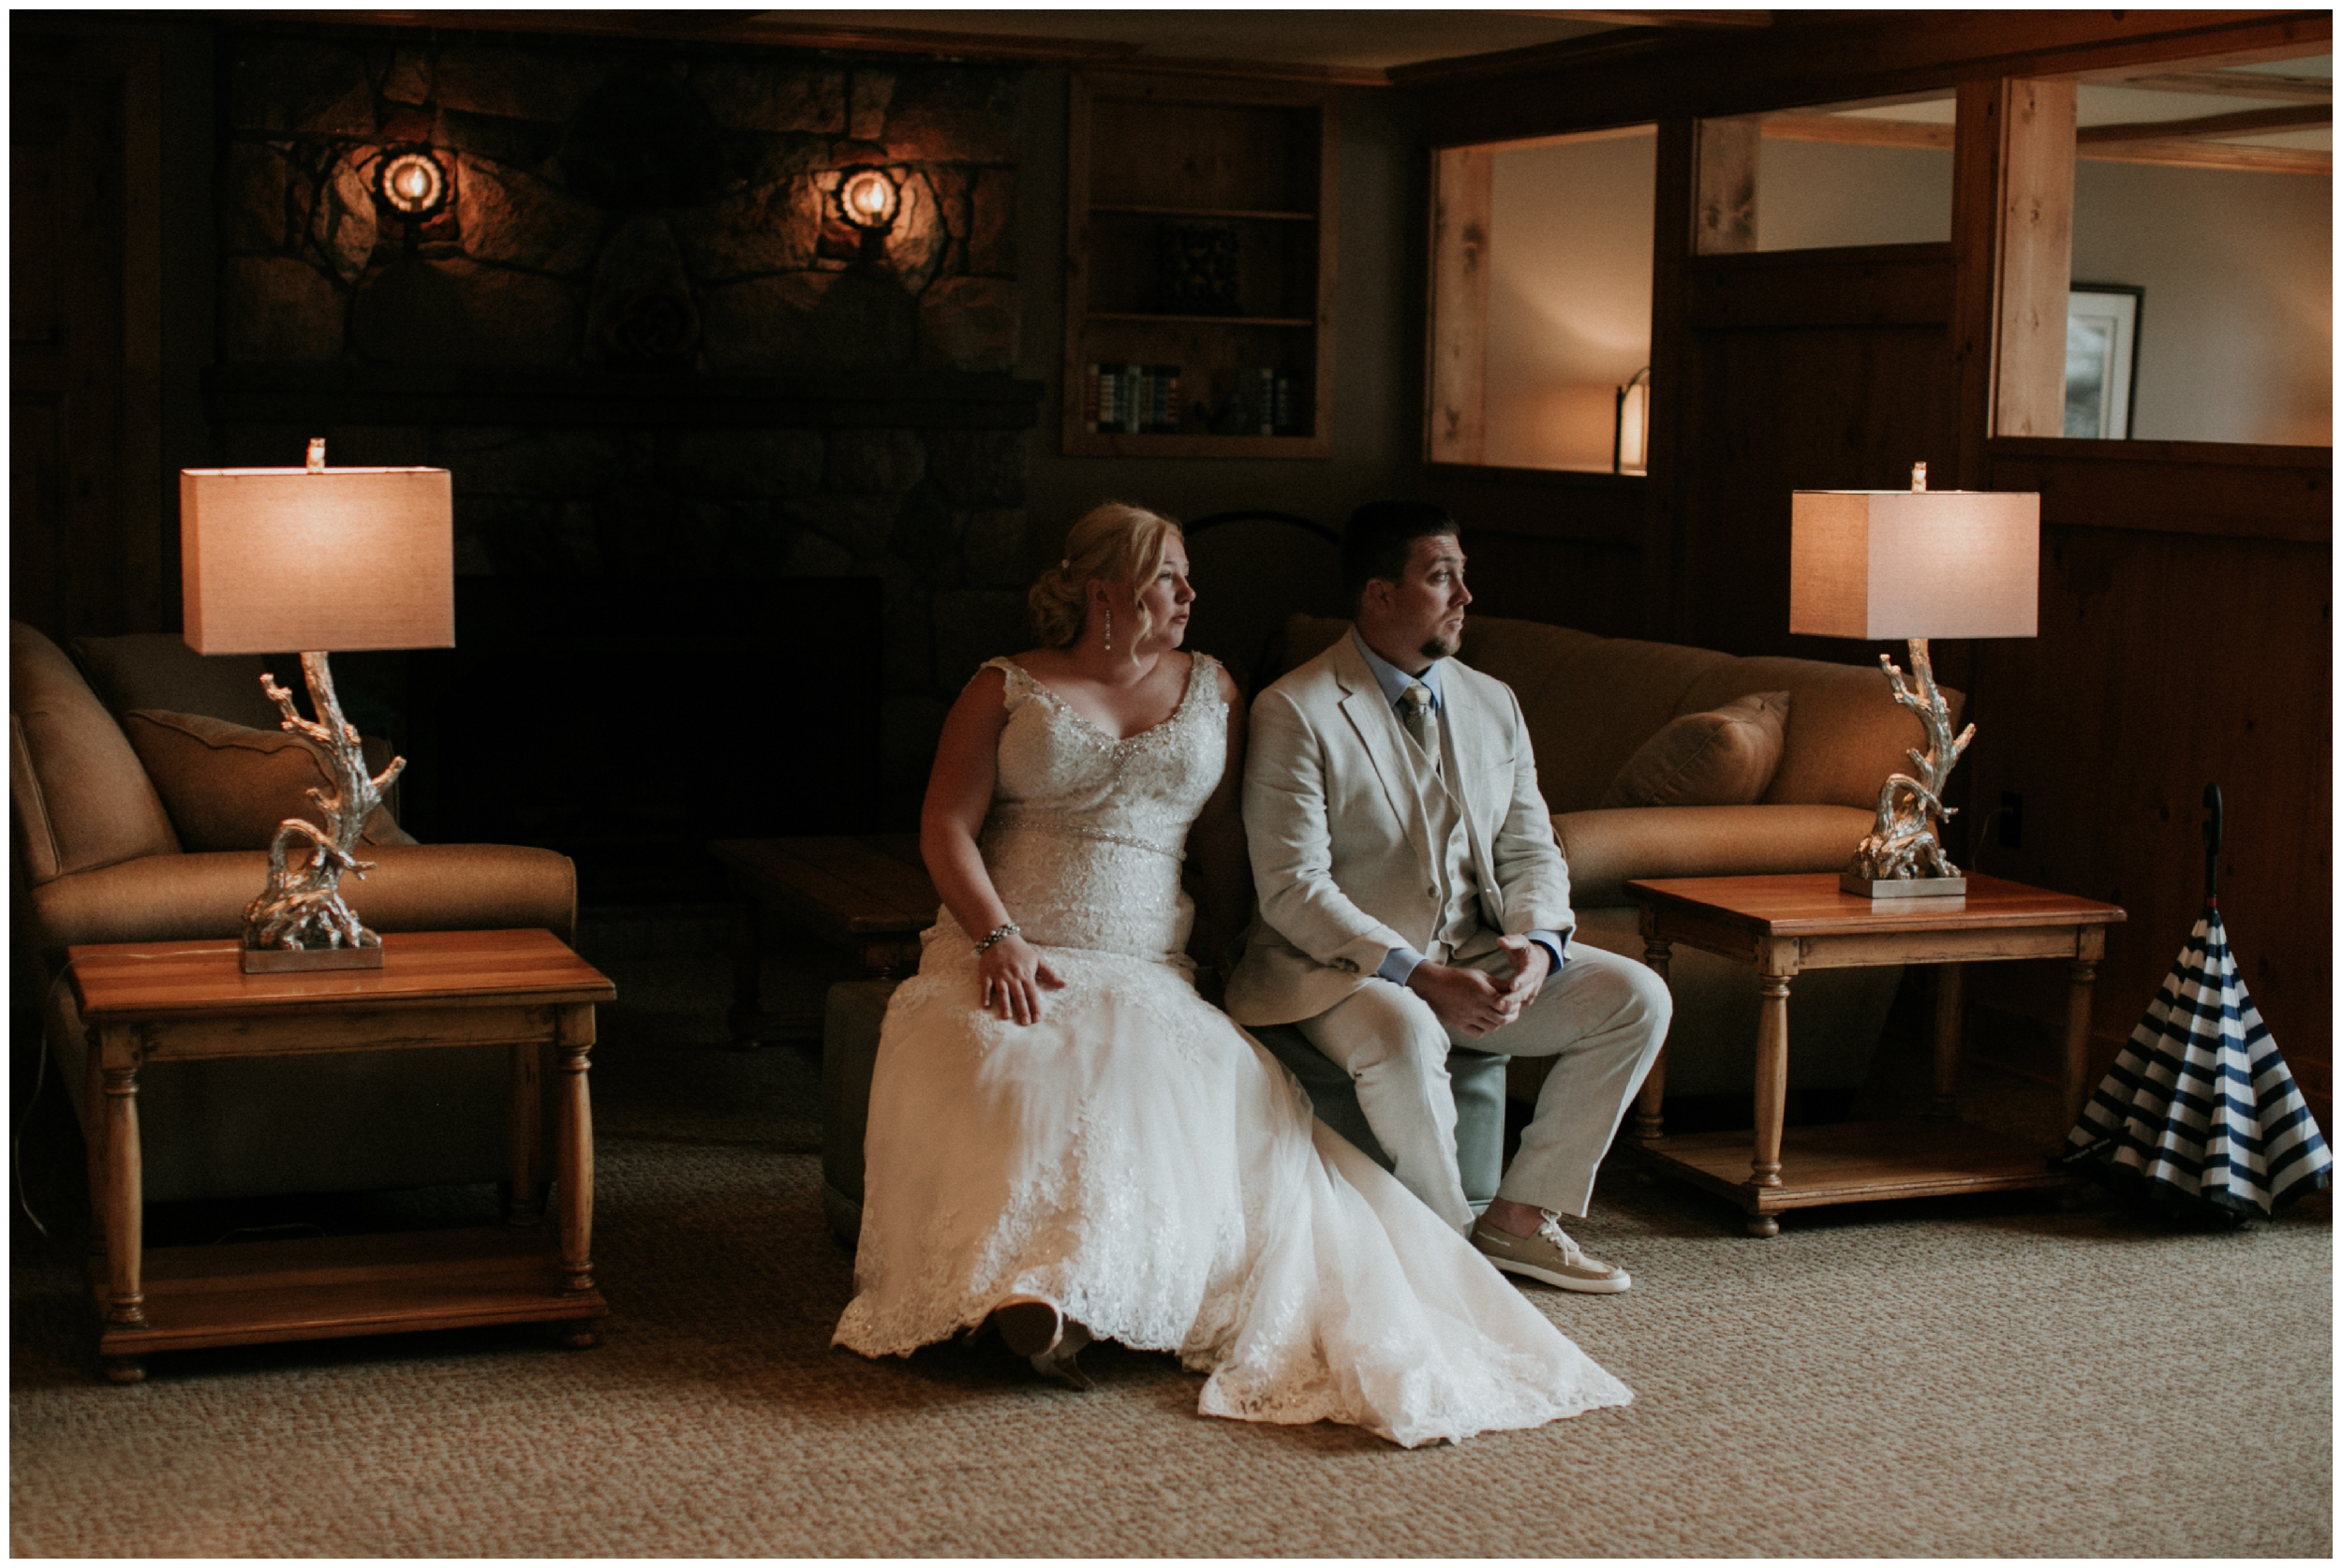 Wedding at Madden's Resort on Gull Lake in Brainerd MN